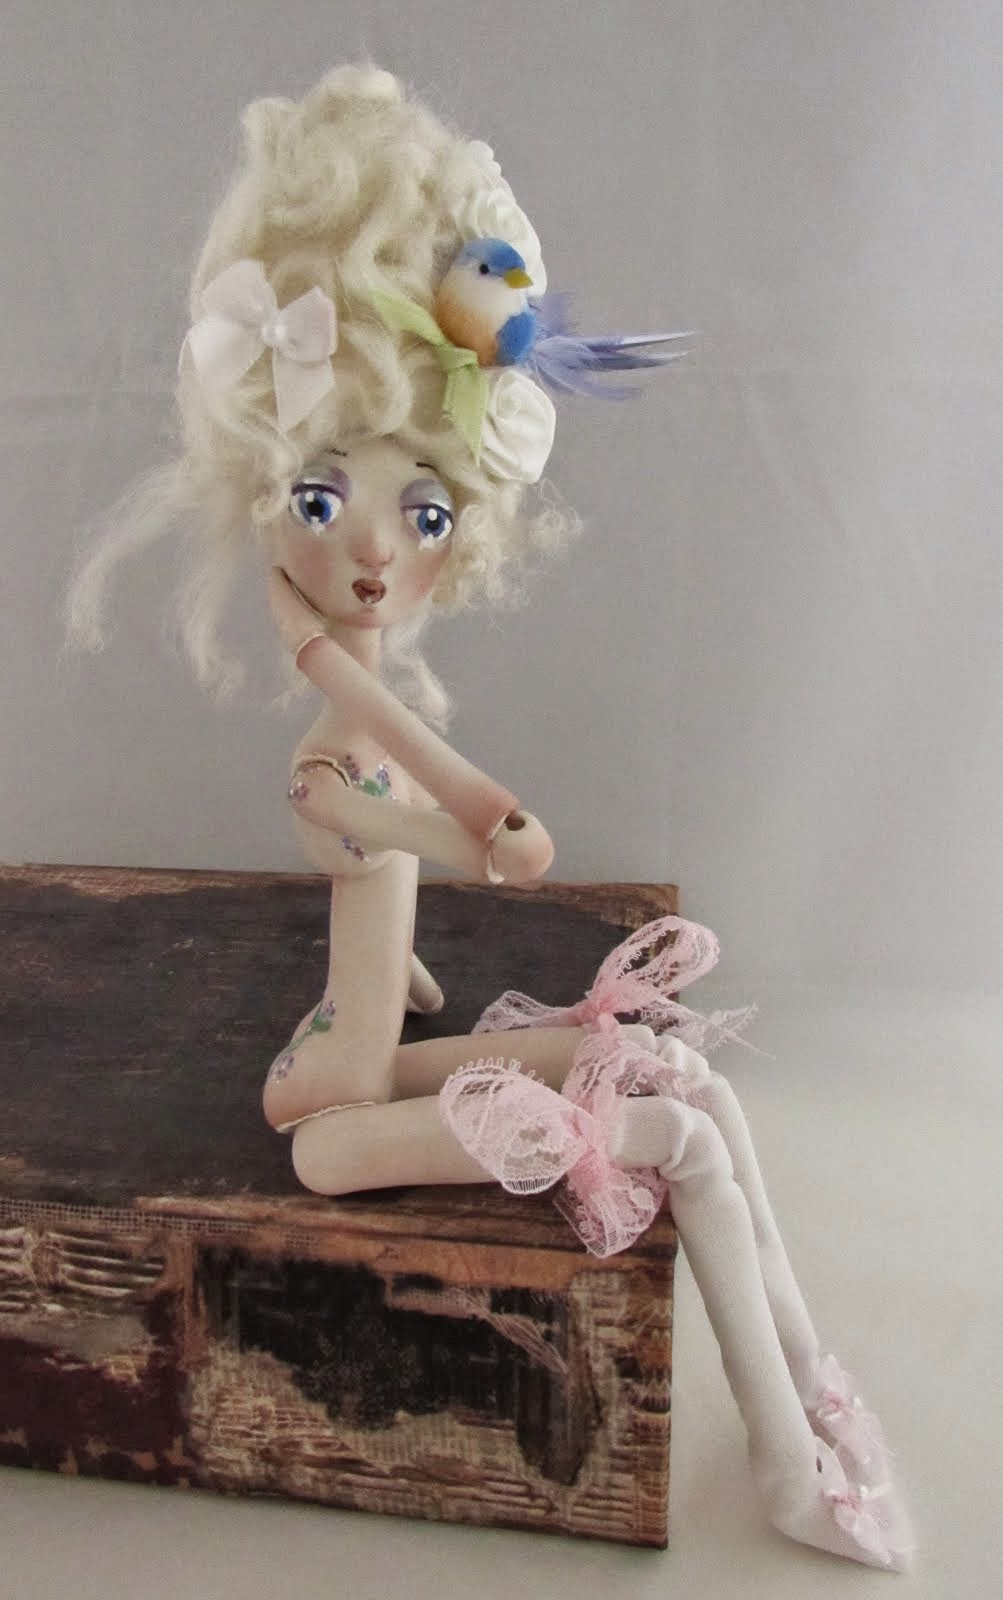 MY ZIBBET PORCELAIN SHOP